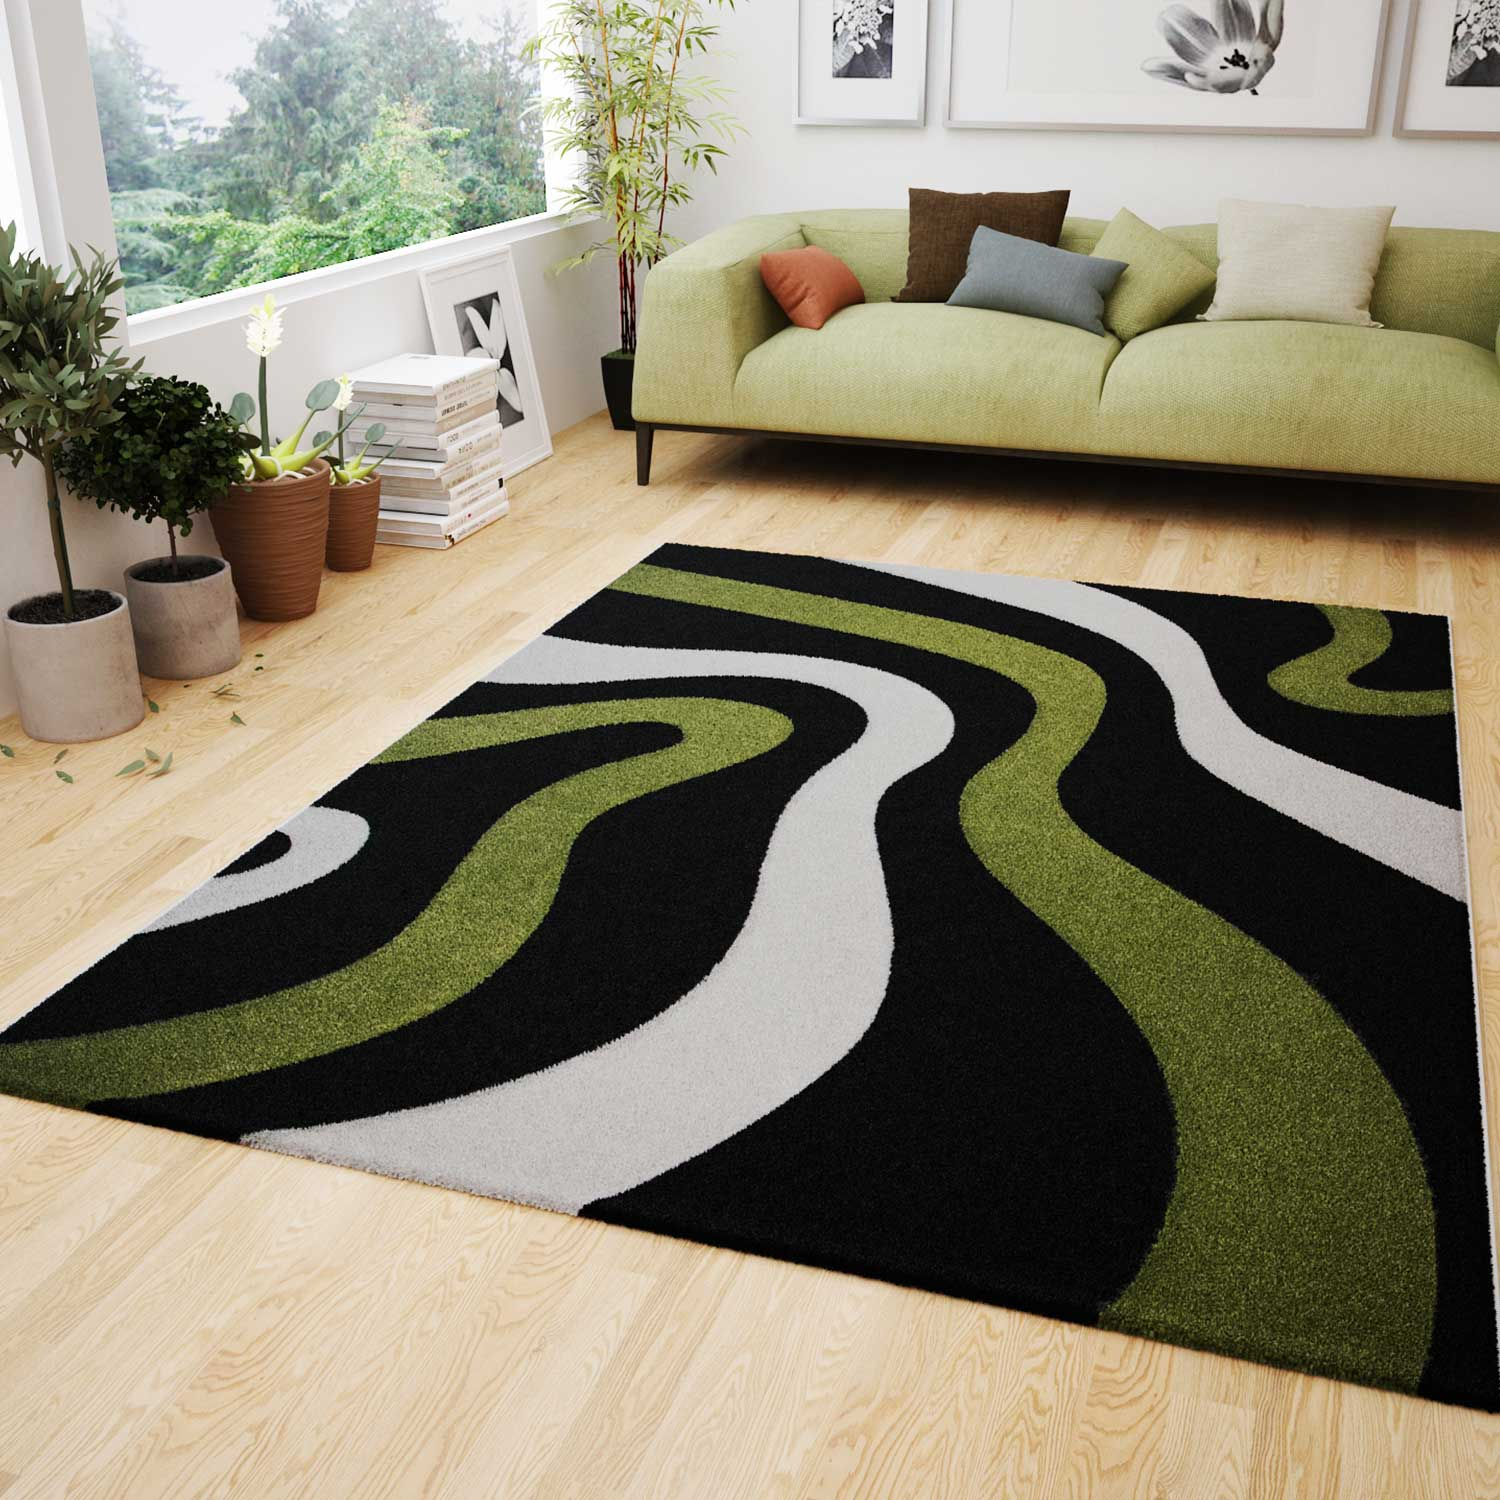 Livingroom or Bedroom Rug Modern Design Carpet Rug with Wave Patterns  Contour Cut Green Black and White- I9466